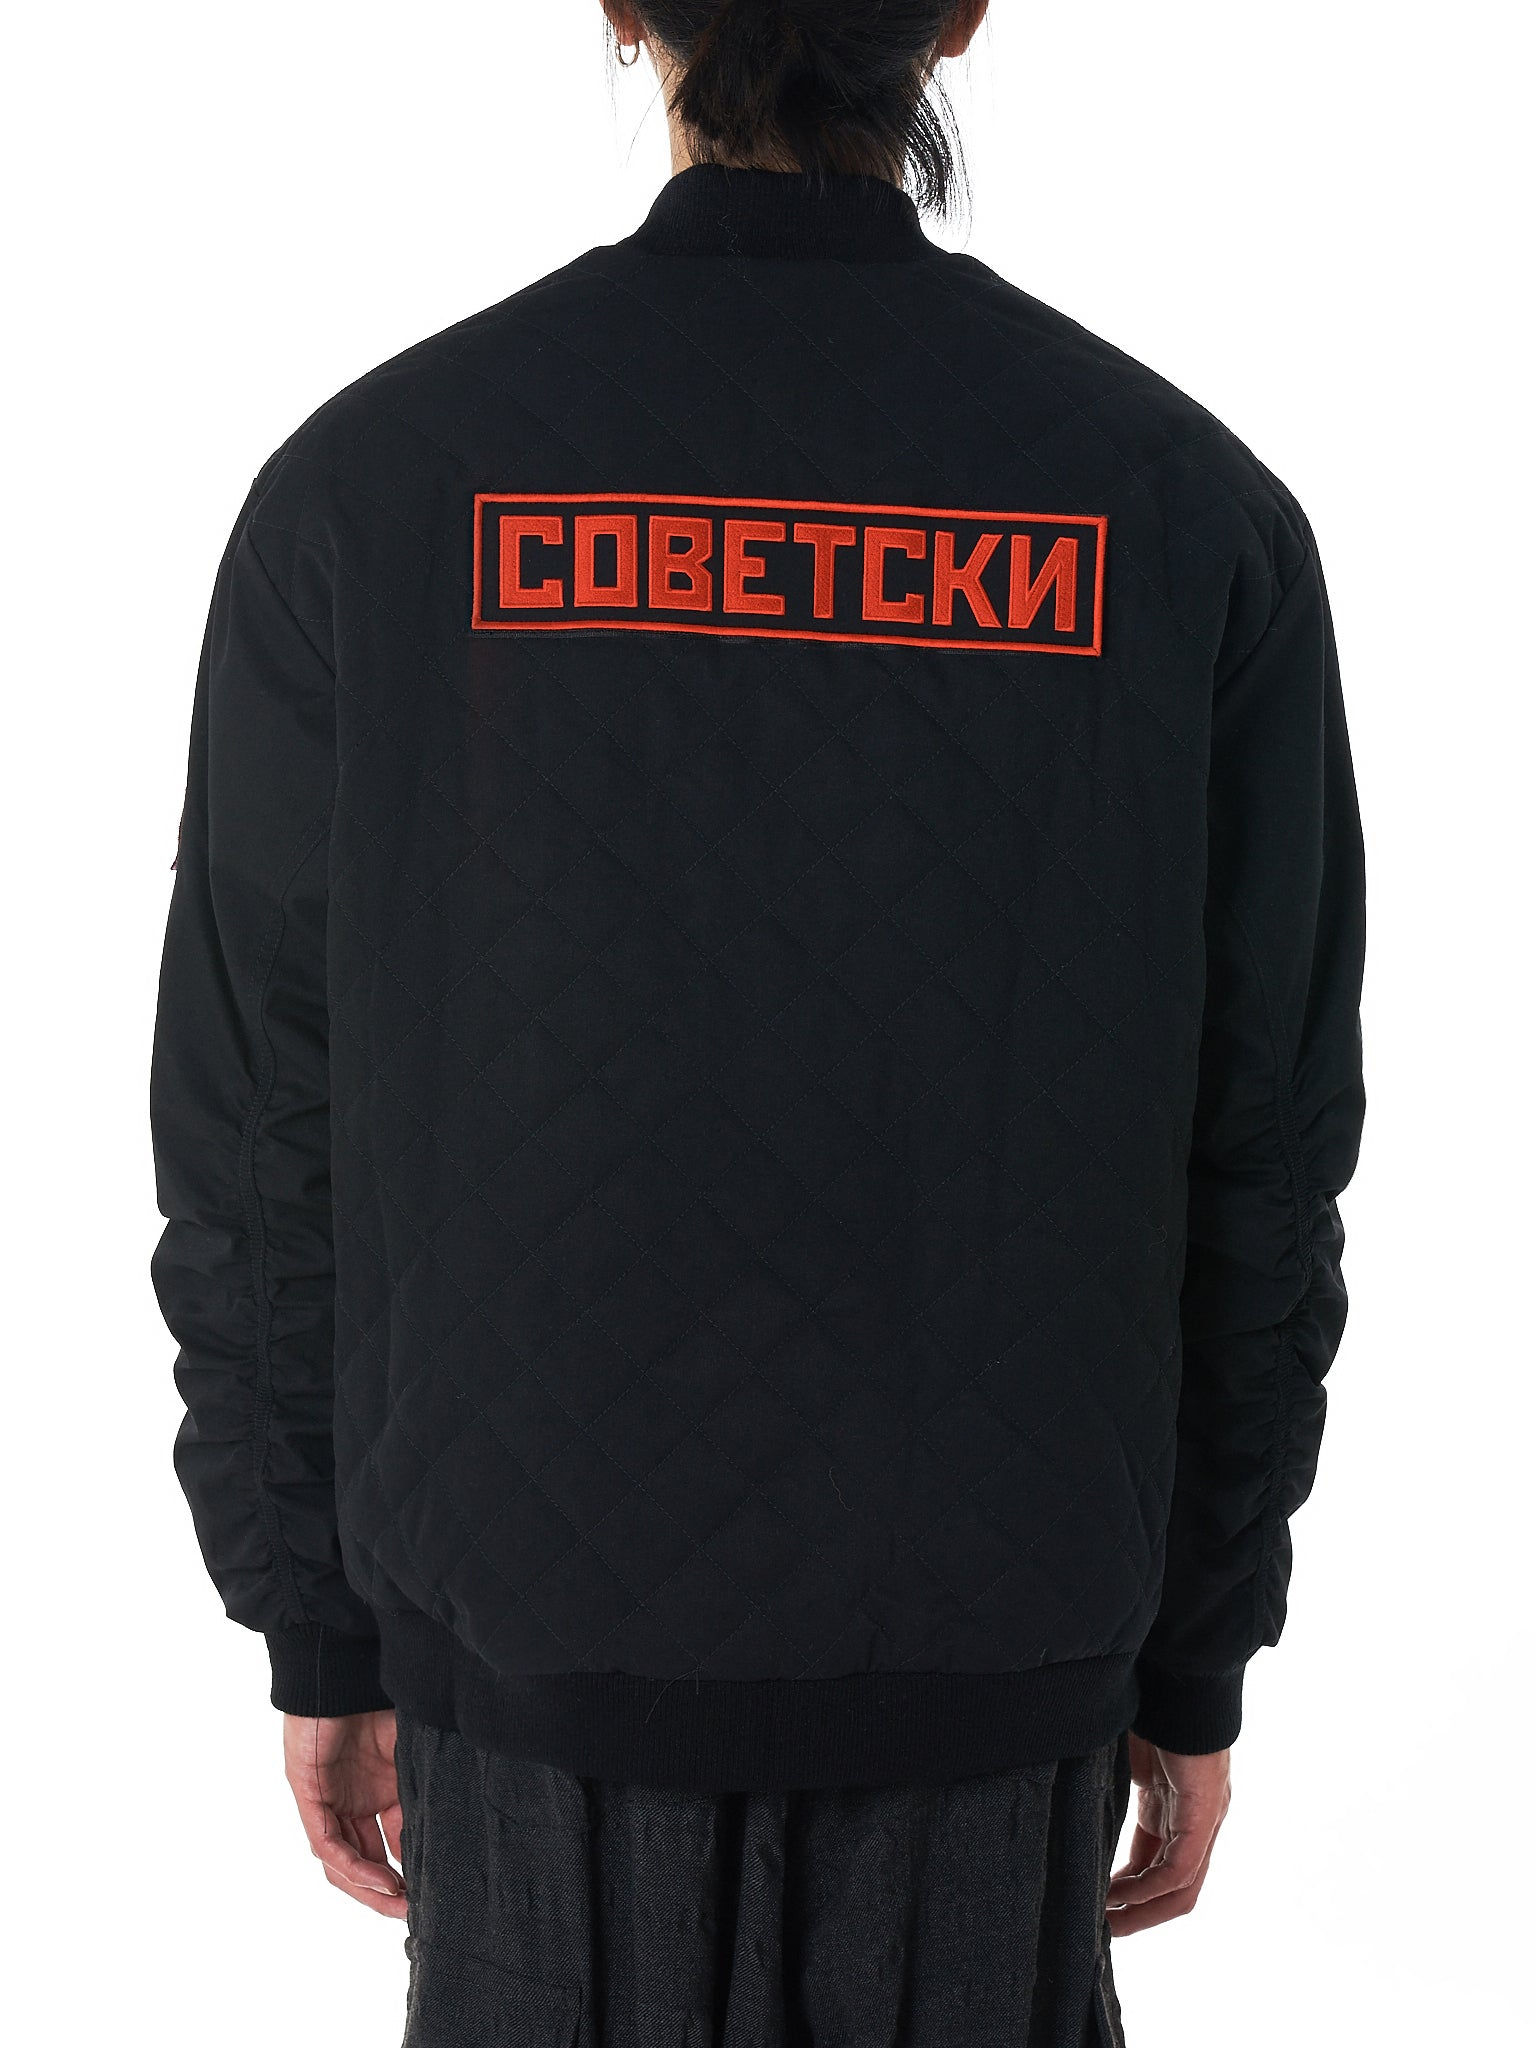 Sovetsky1917 Bomber Jacket - Hlorenzo Back